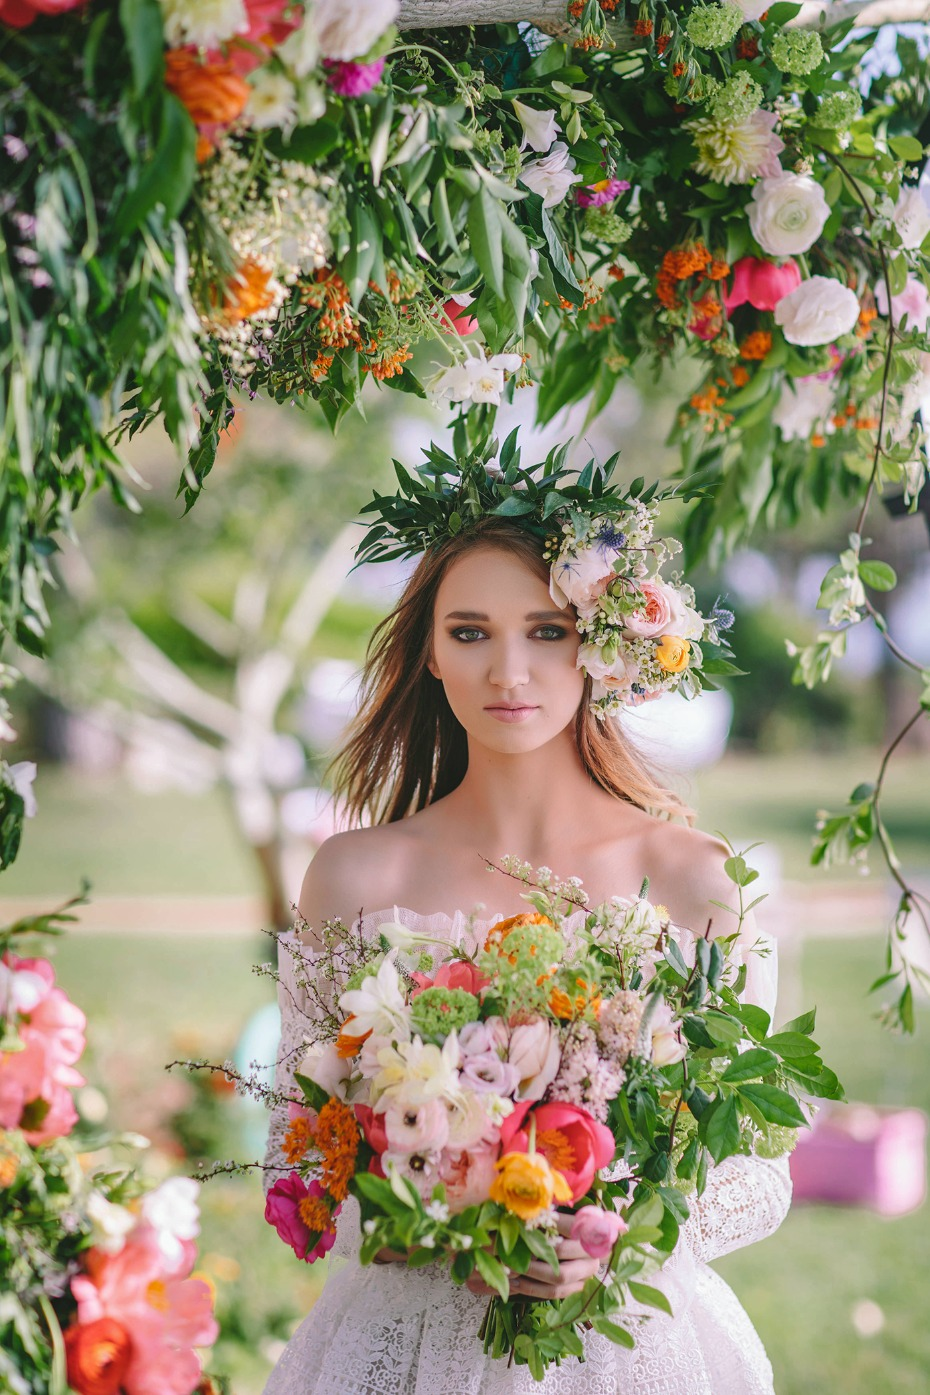 Flower-full boho bride